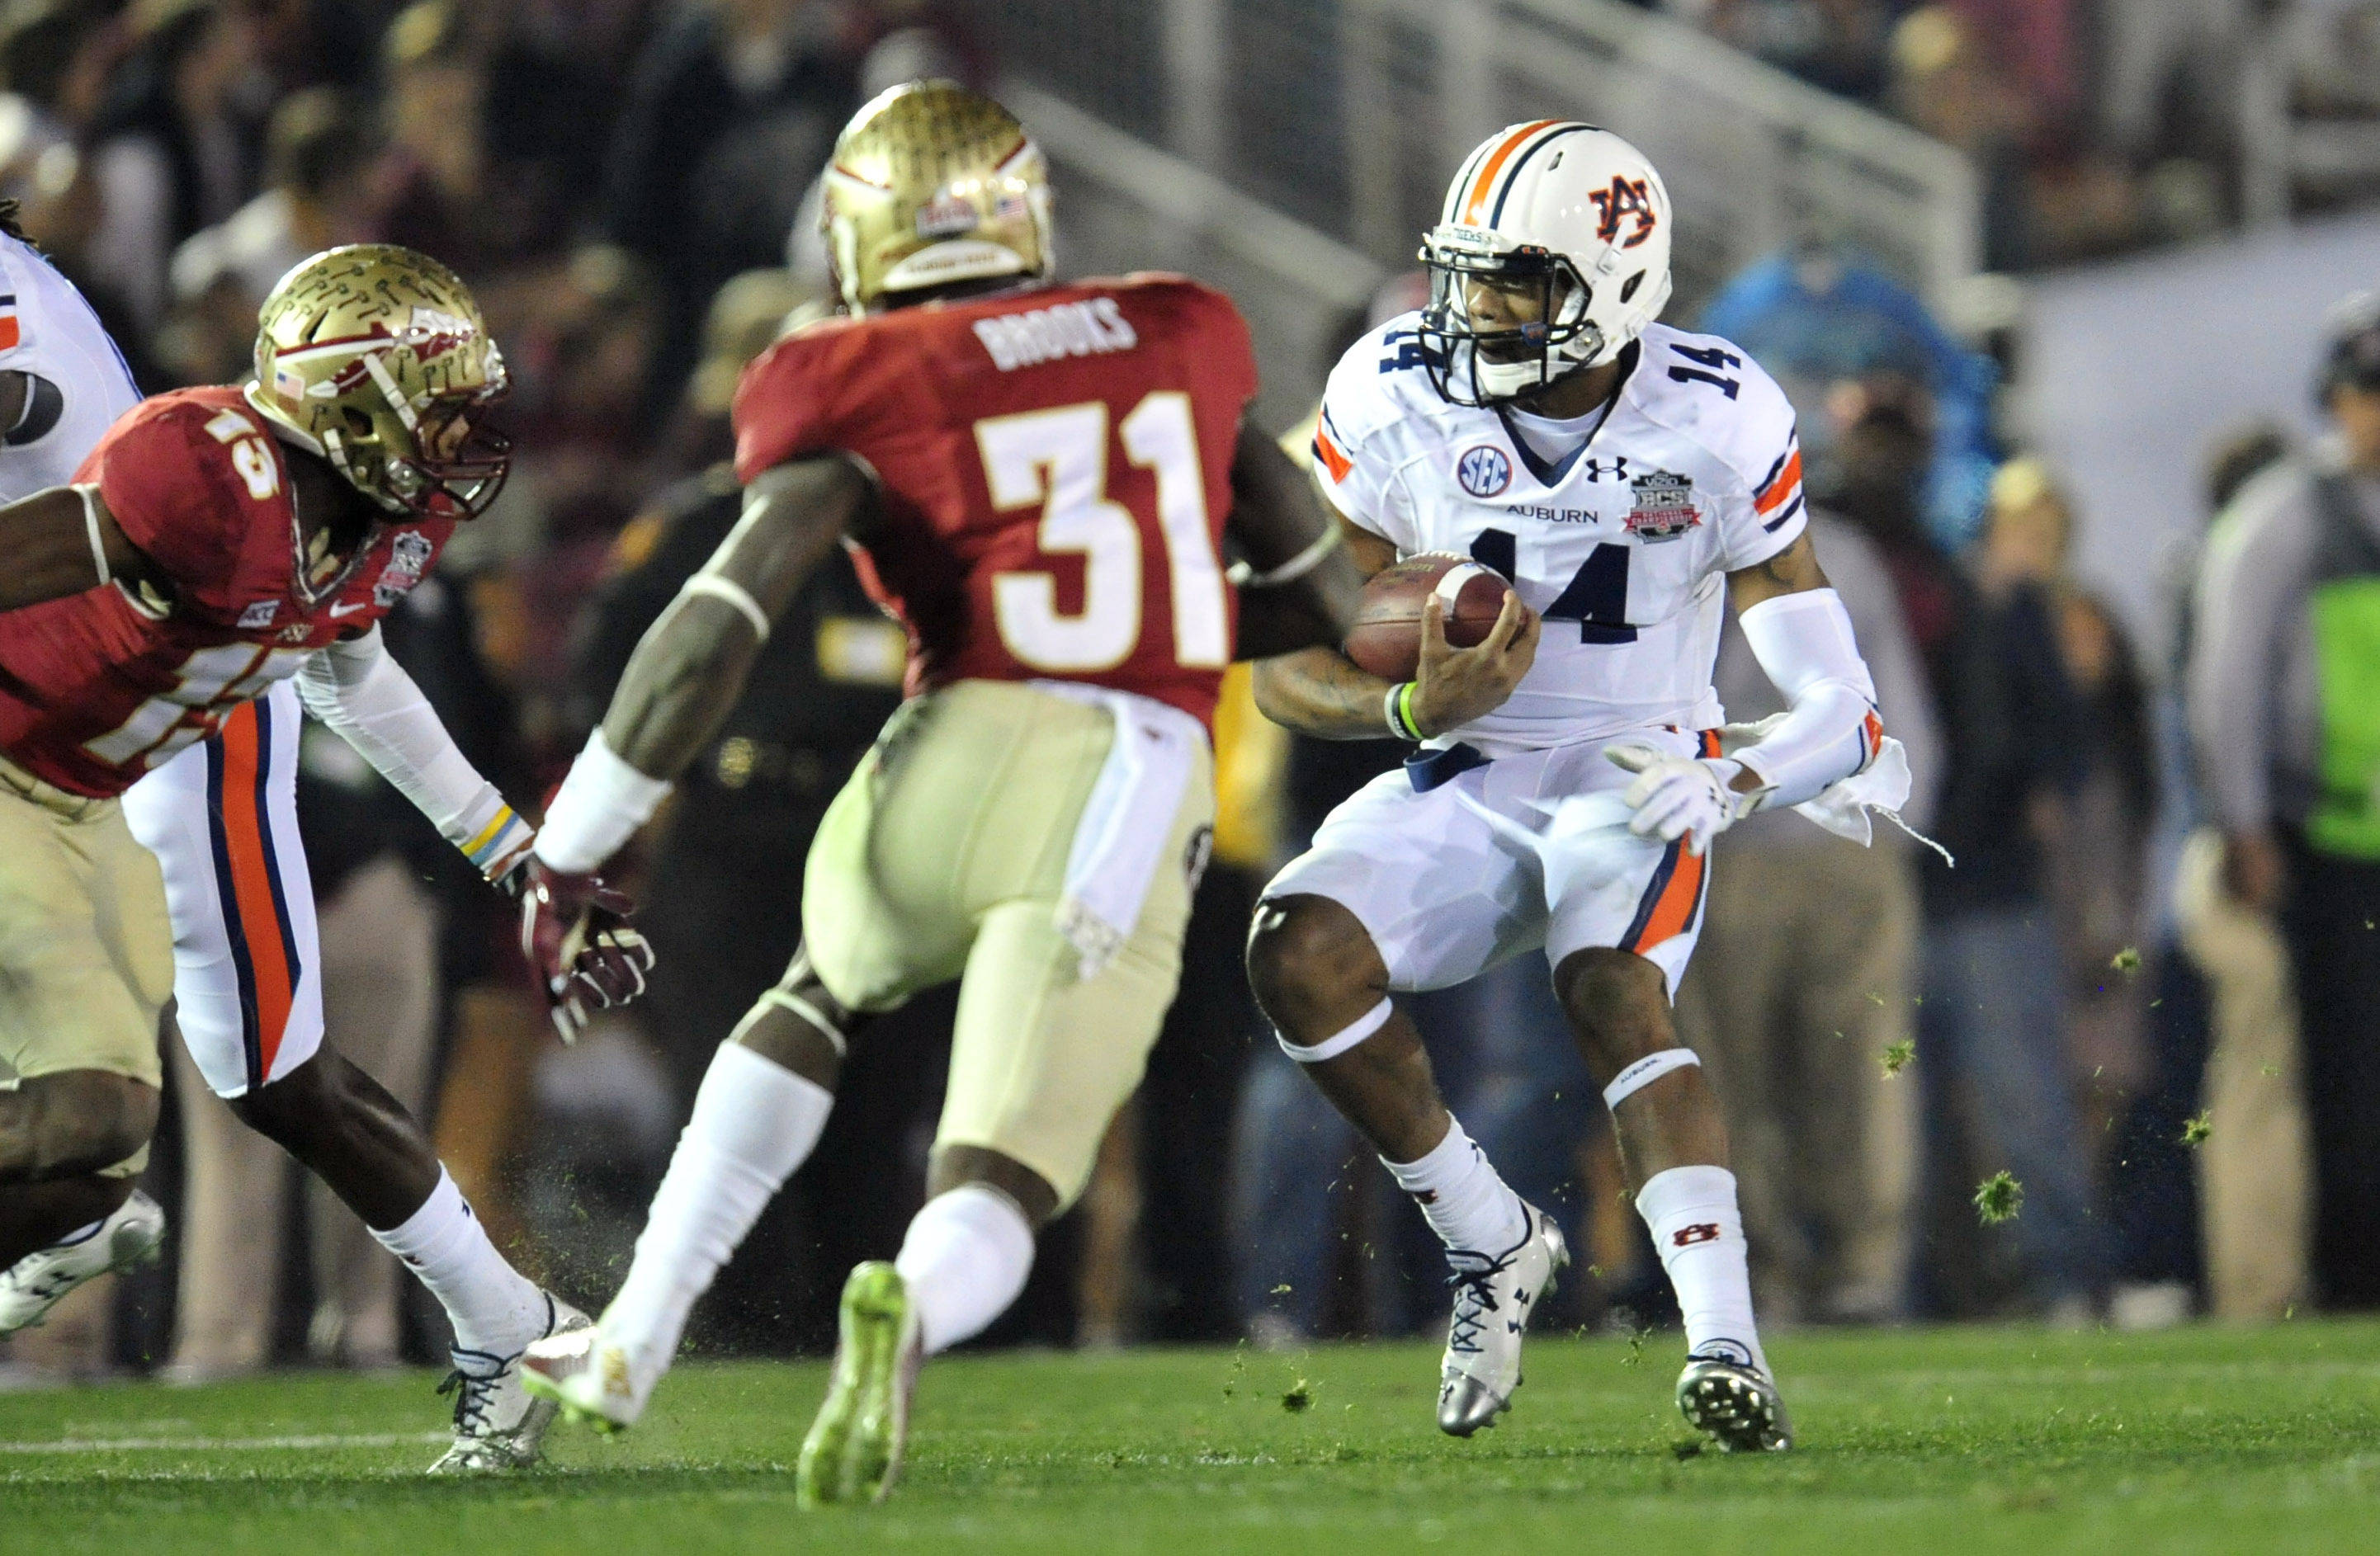 Jan 6, 2014; Pasadena, CA, USA; Auburn Tigers quarterback Nick Marshall (14) tries to evade Florida State Seminoles defense during the first half of the 2014 BCS National Championship game at the Rose Bowl.  Mandatory Credit: Gary A. Vasquez-USA TODAY Sports